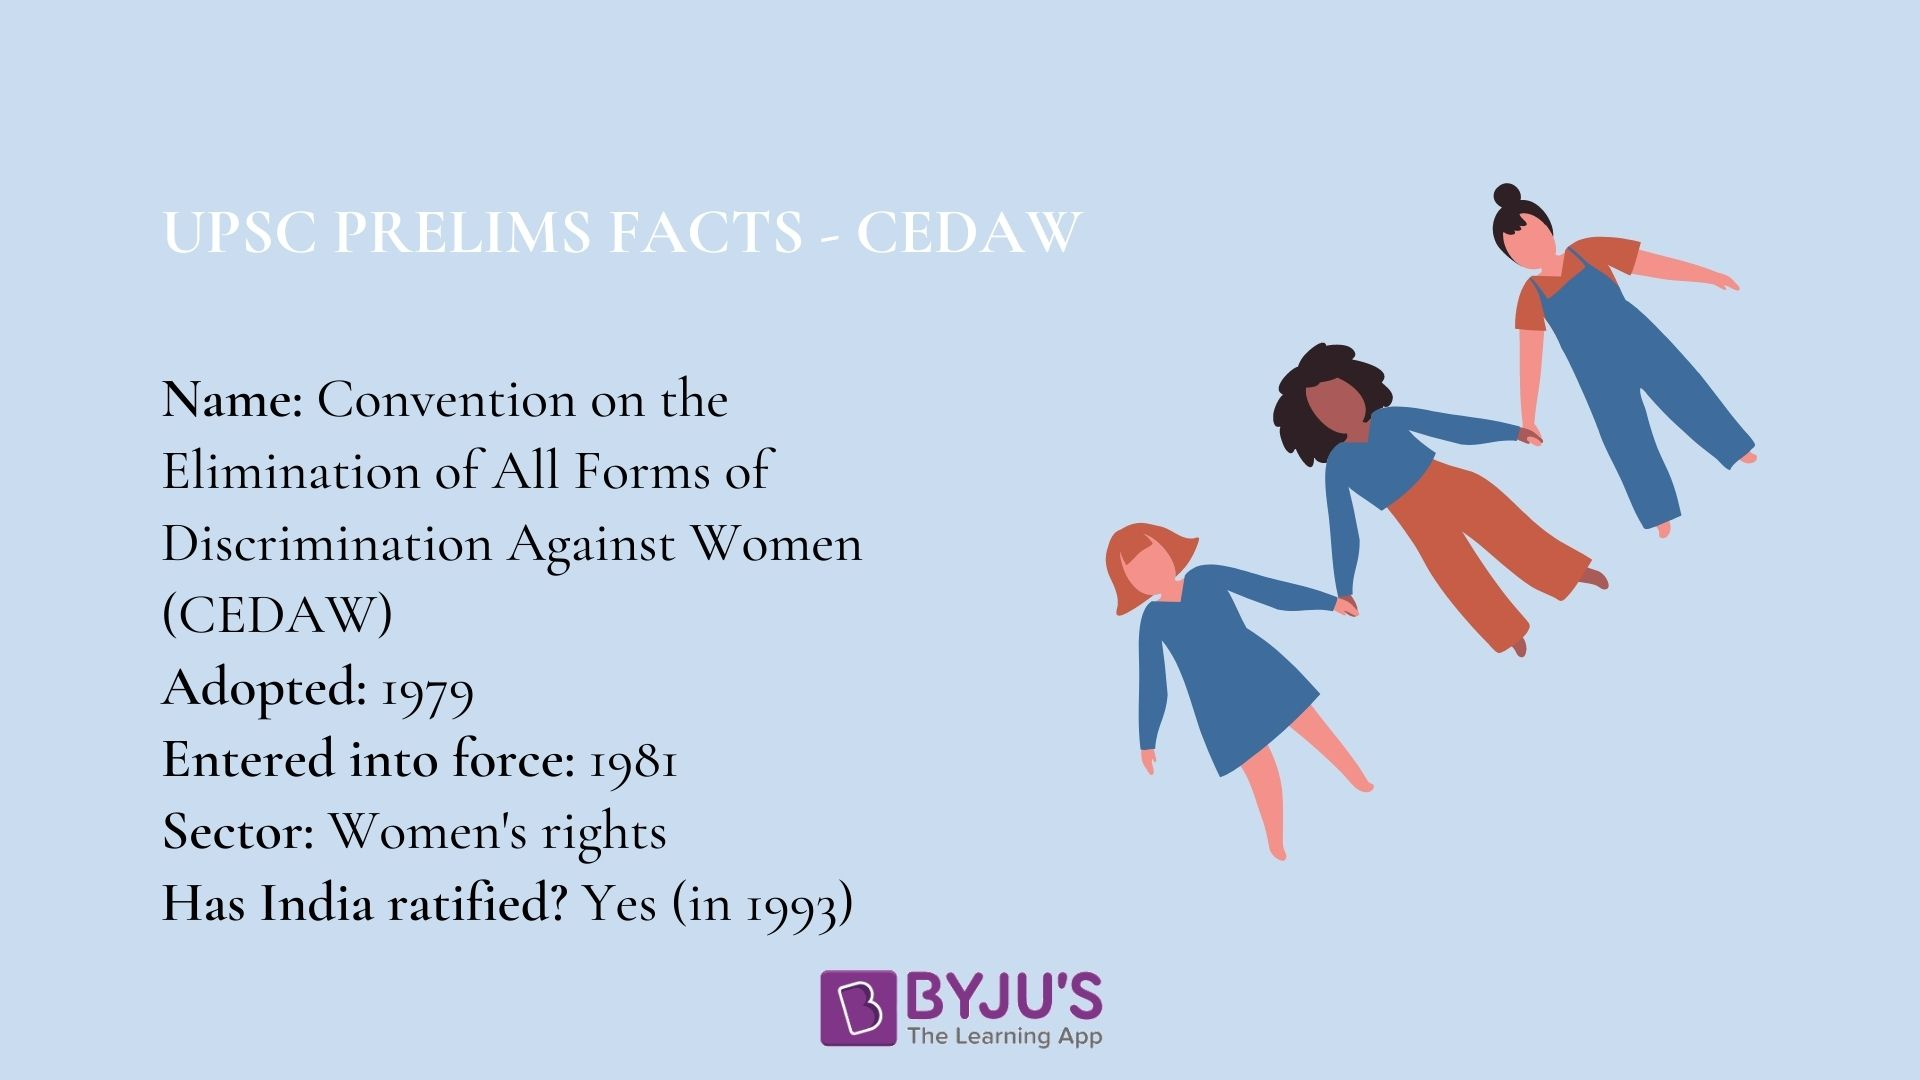 Prelims Facts for CEDAW